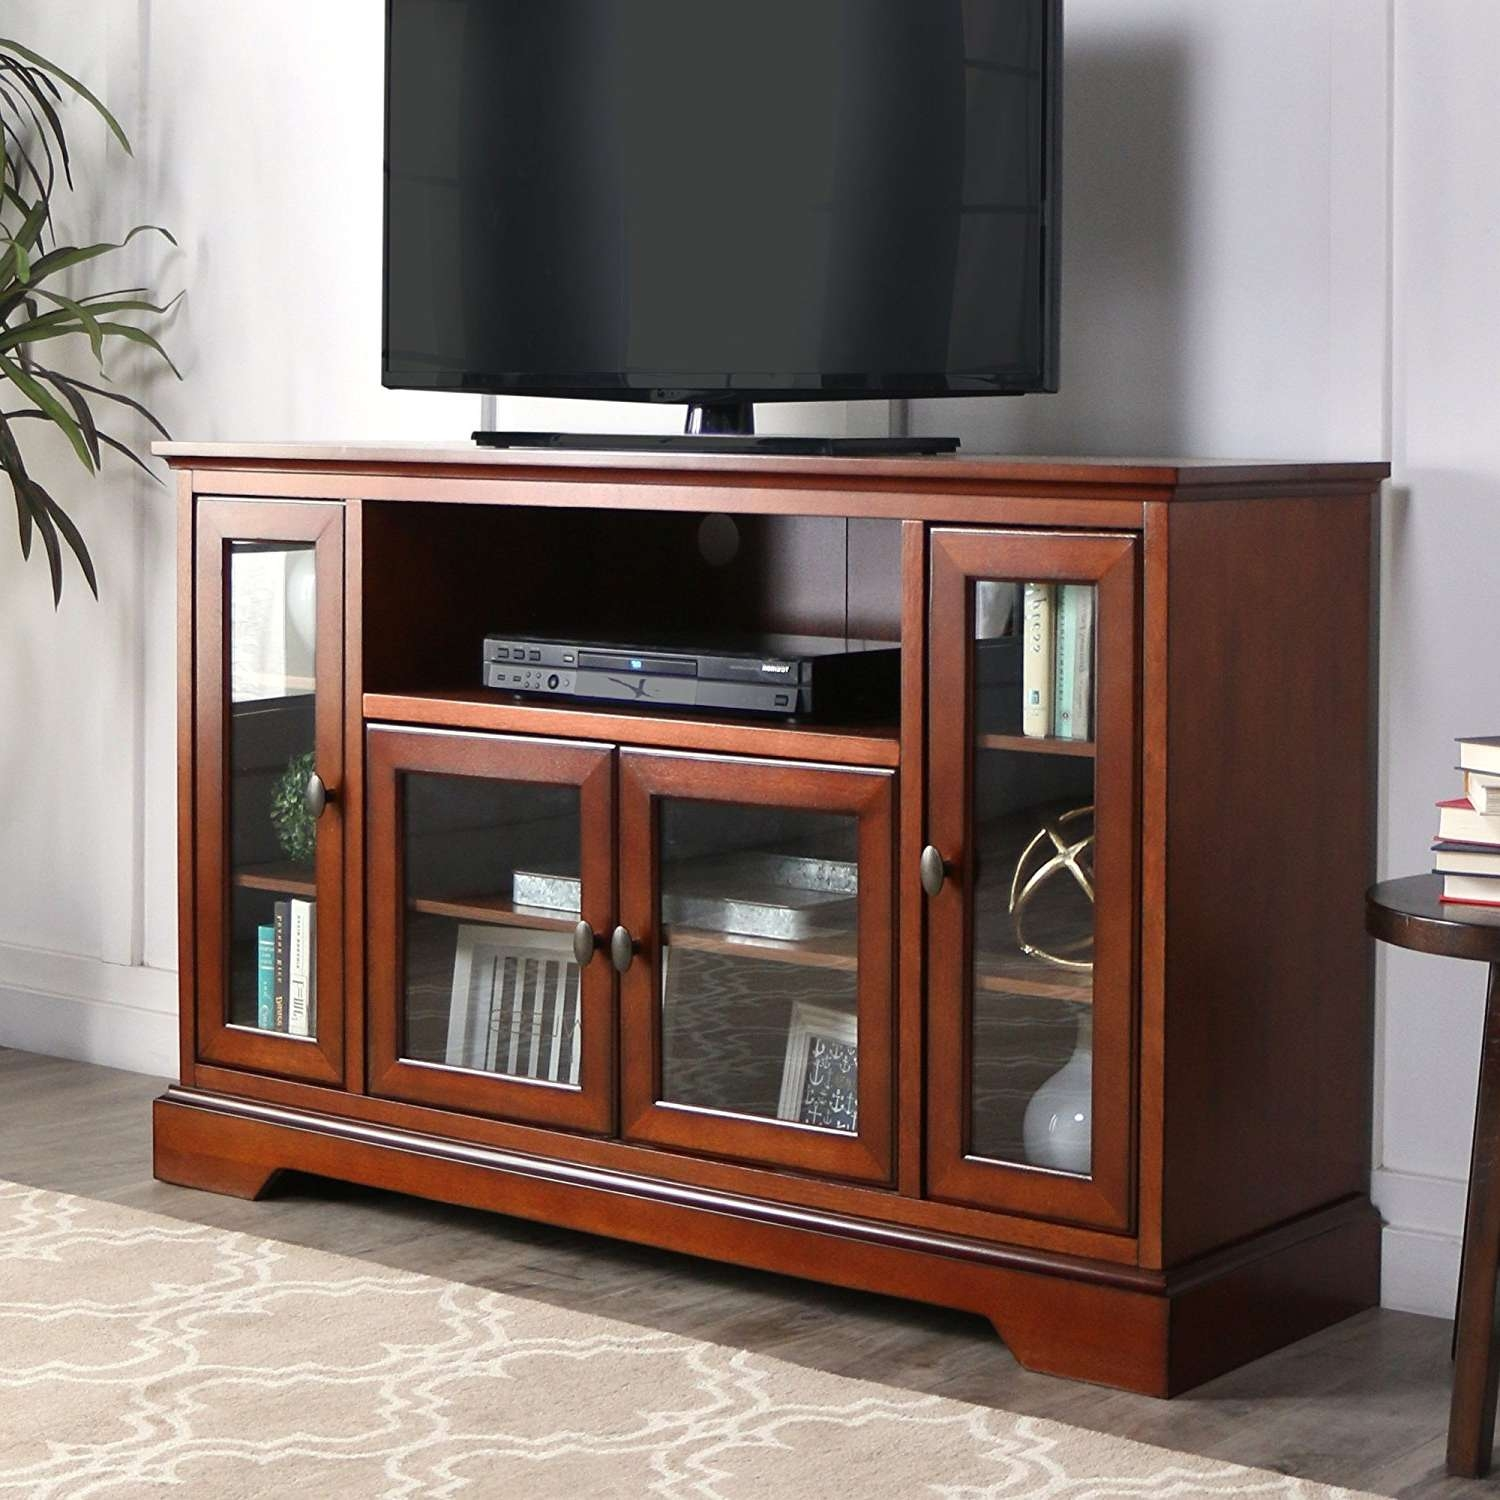 Perfect Walker Edison Highboy Tv Stand 99 For Home Decoration Throughout Tv Stands 38 Inches Wide (View 10 of 15)